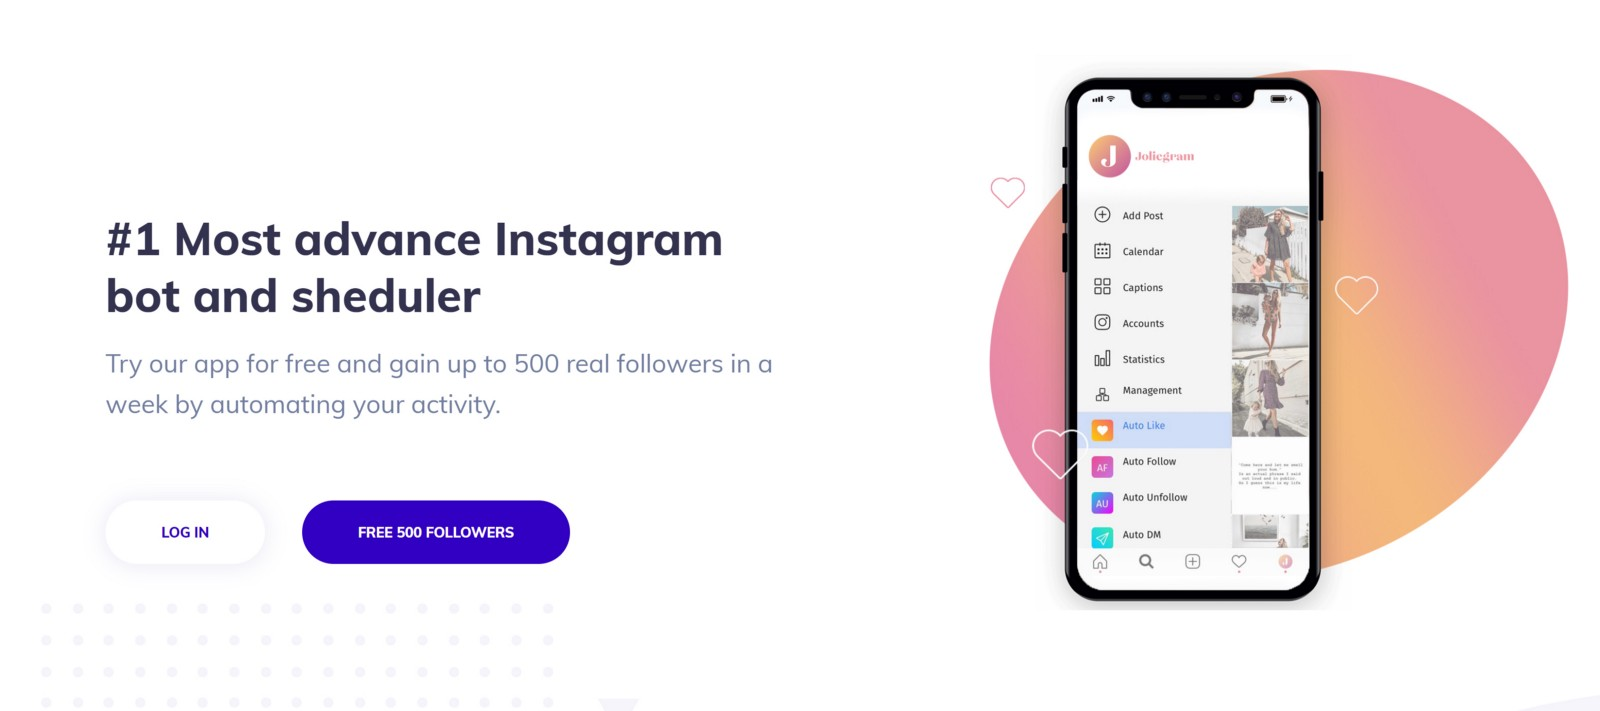 5 ways to get famous on instagram ♡ – Etienne D  – Medium